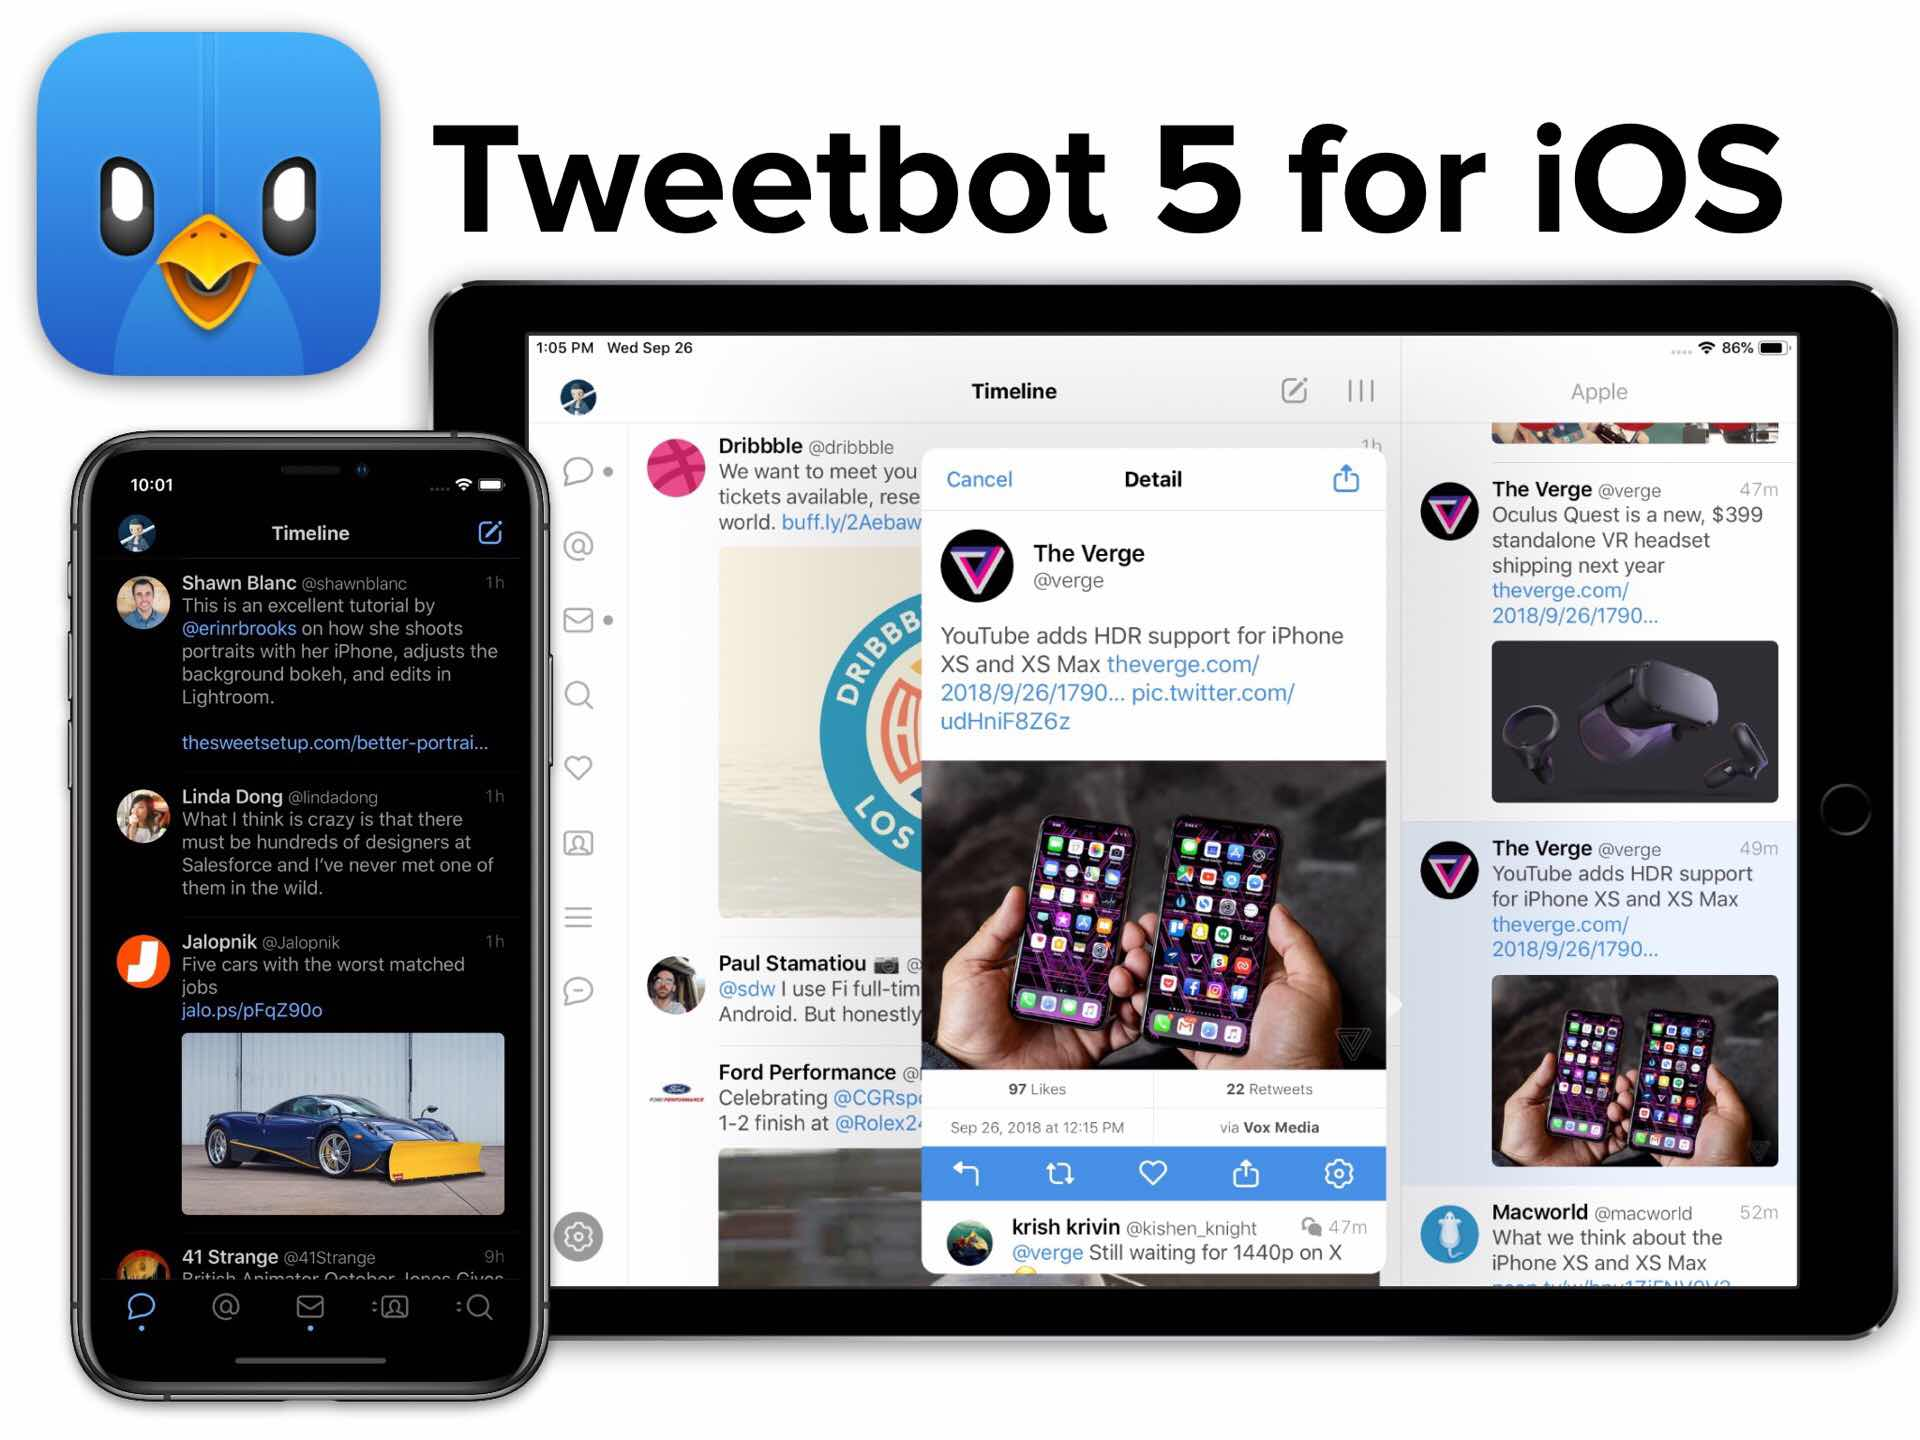 tweetbot-5-for-ios